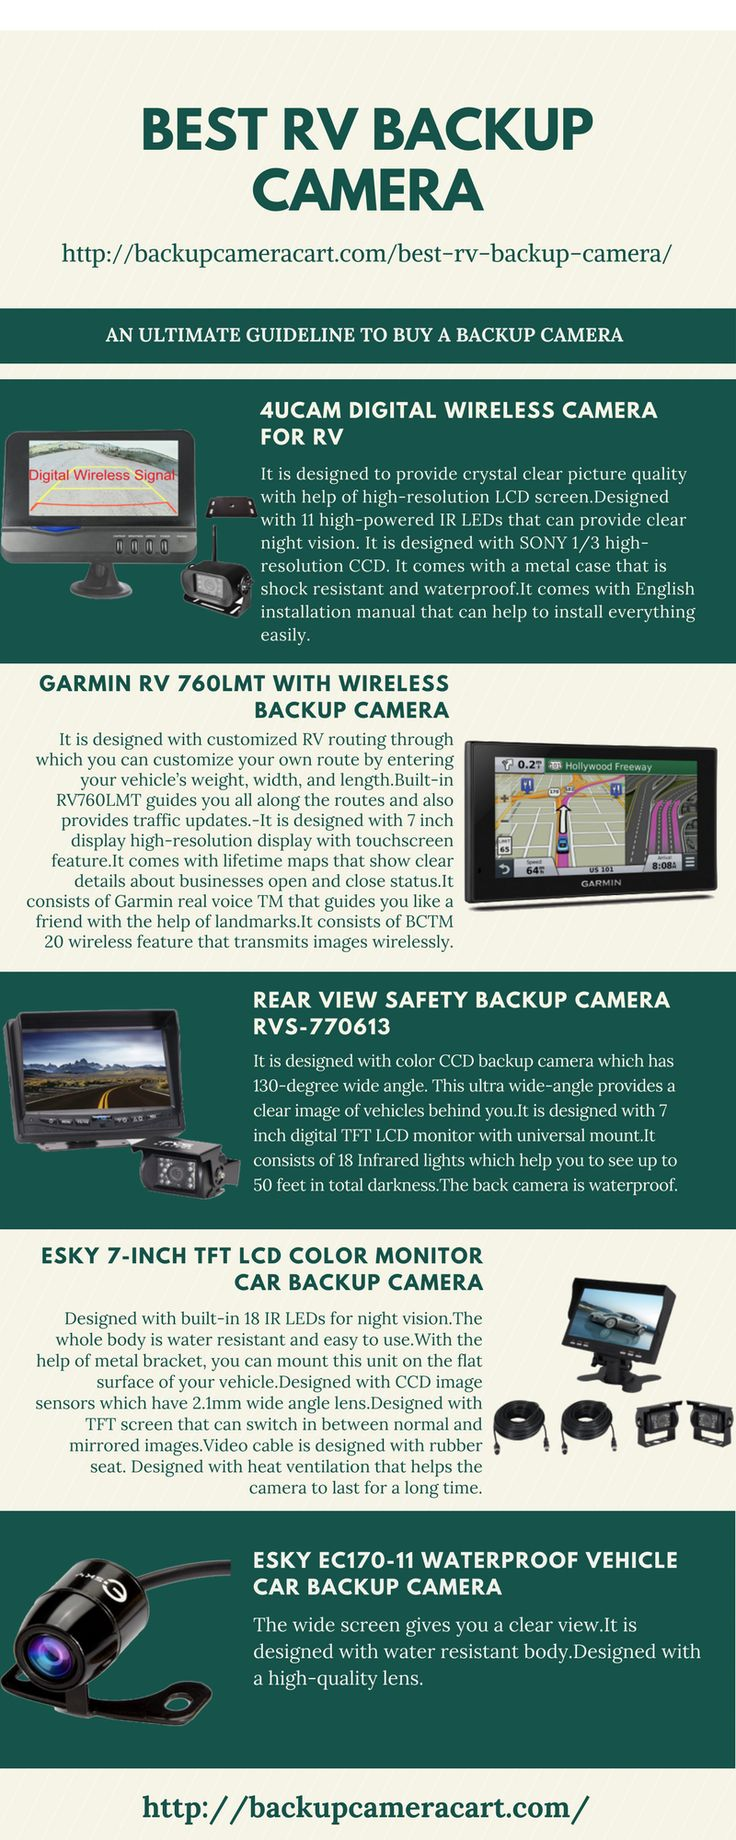 565e289d7fd66b453c81e90a83f8f026 25 unique rv backup camera ideas on pinterest backup camera  at couponss.co